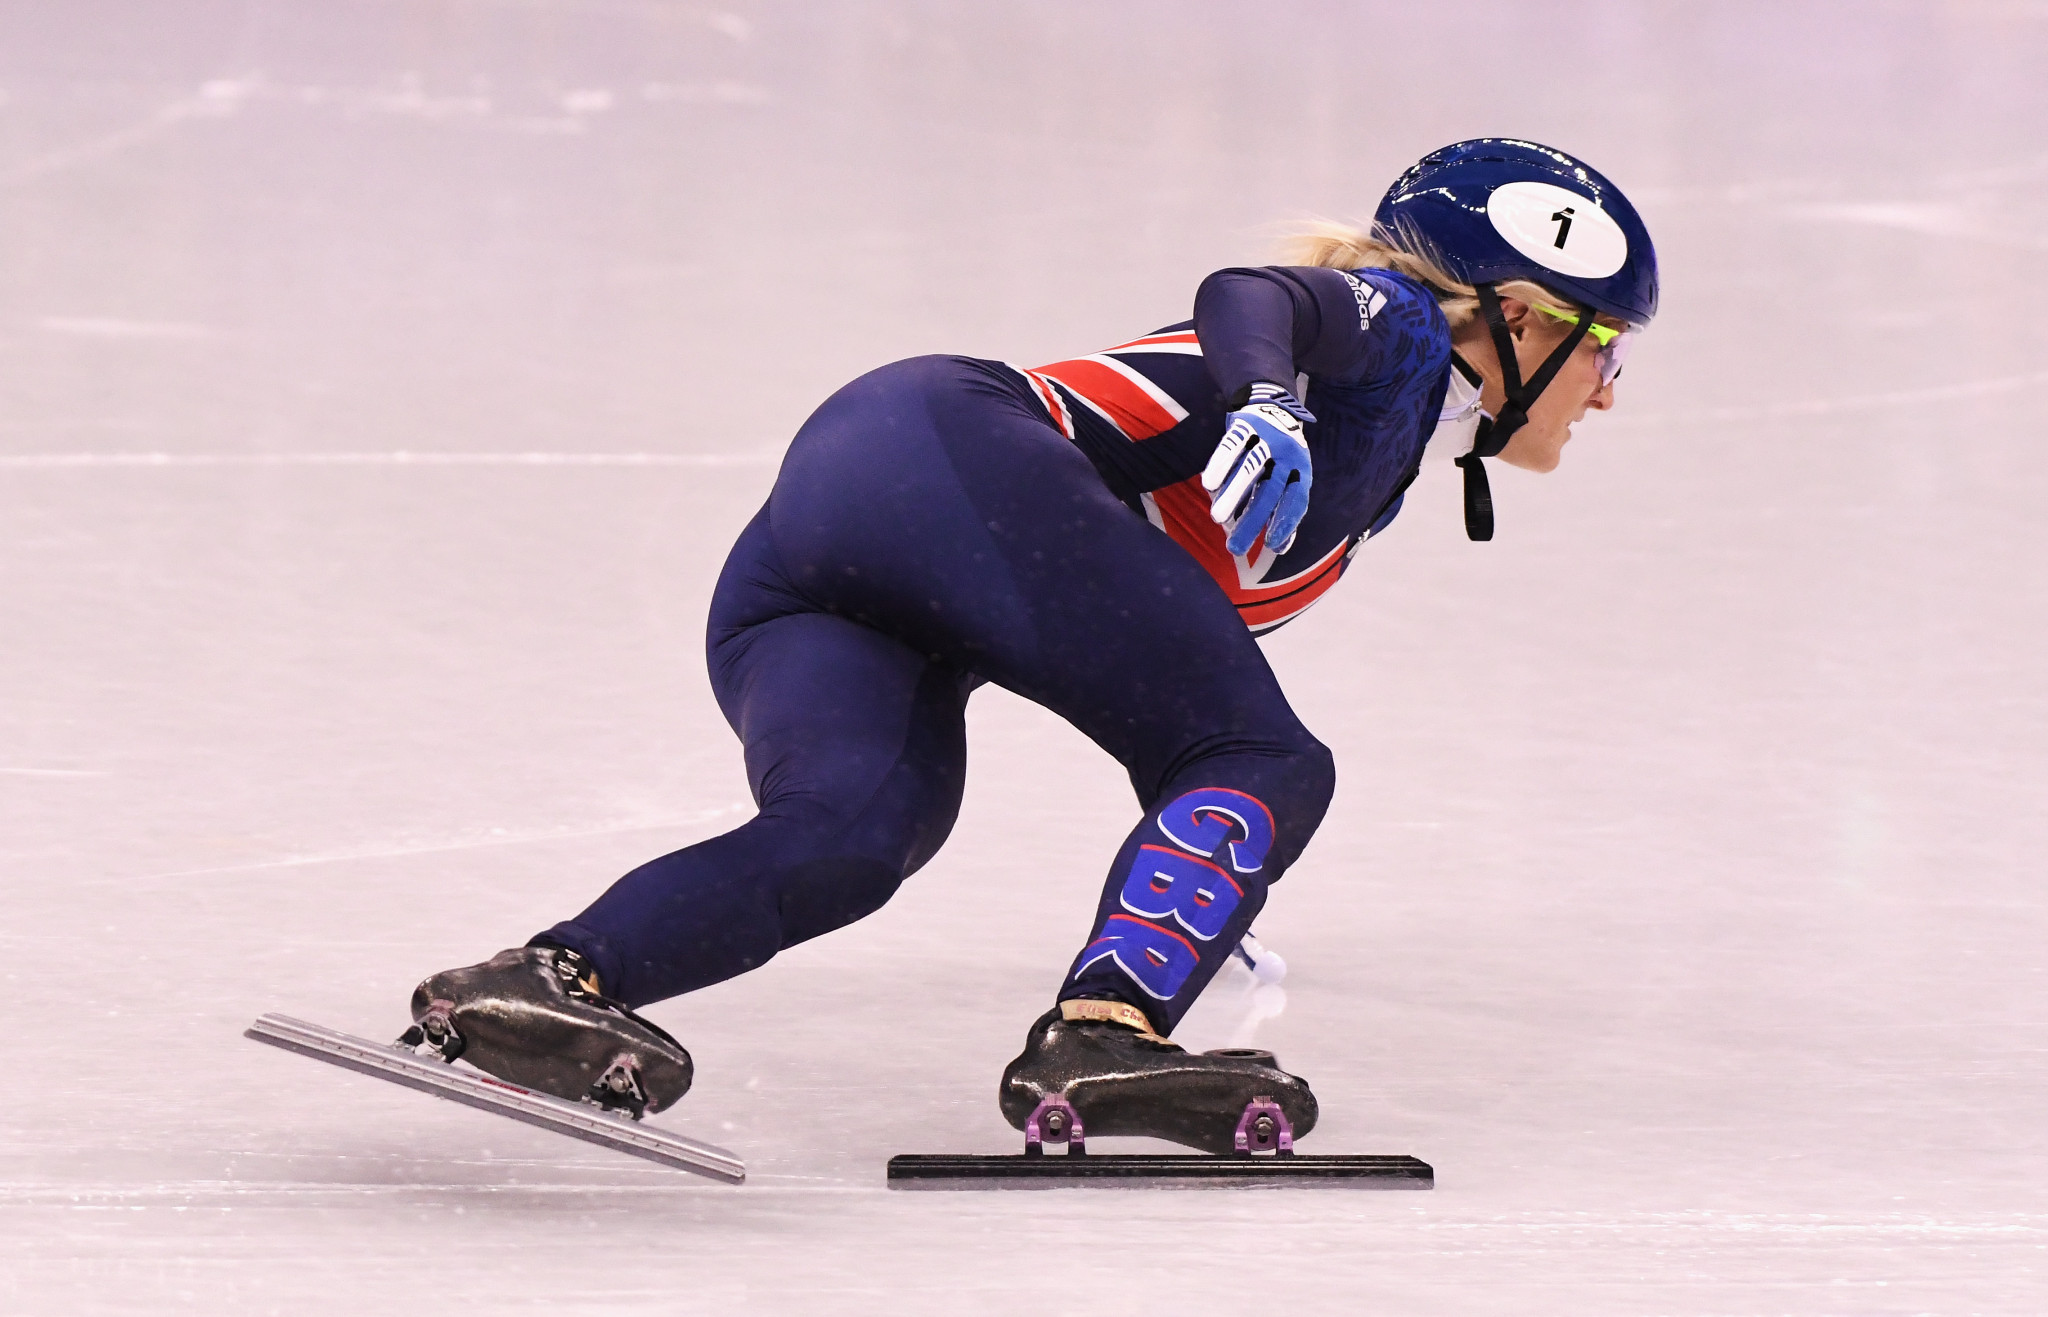 Elise Christie is a triple world champion but has so far endured disappointment at the Winter Olympics ©Getty Images